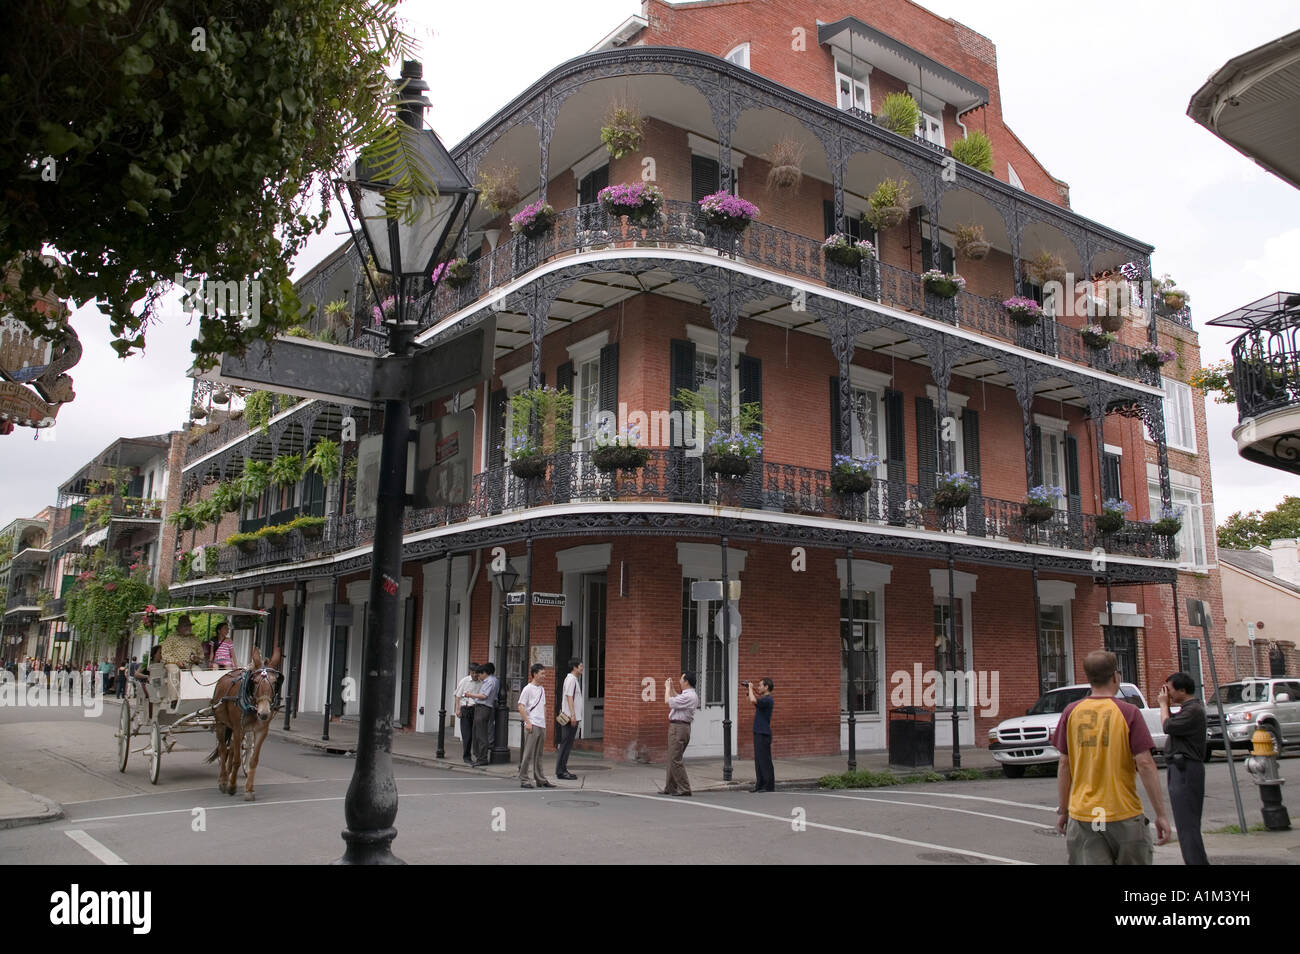 A Street Scene With A Building With A Long Veranda On Corner In New Stock Photo Alamy